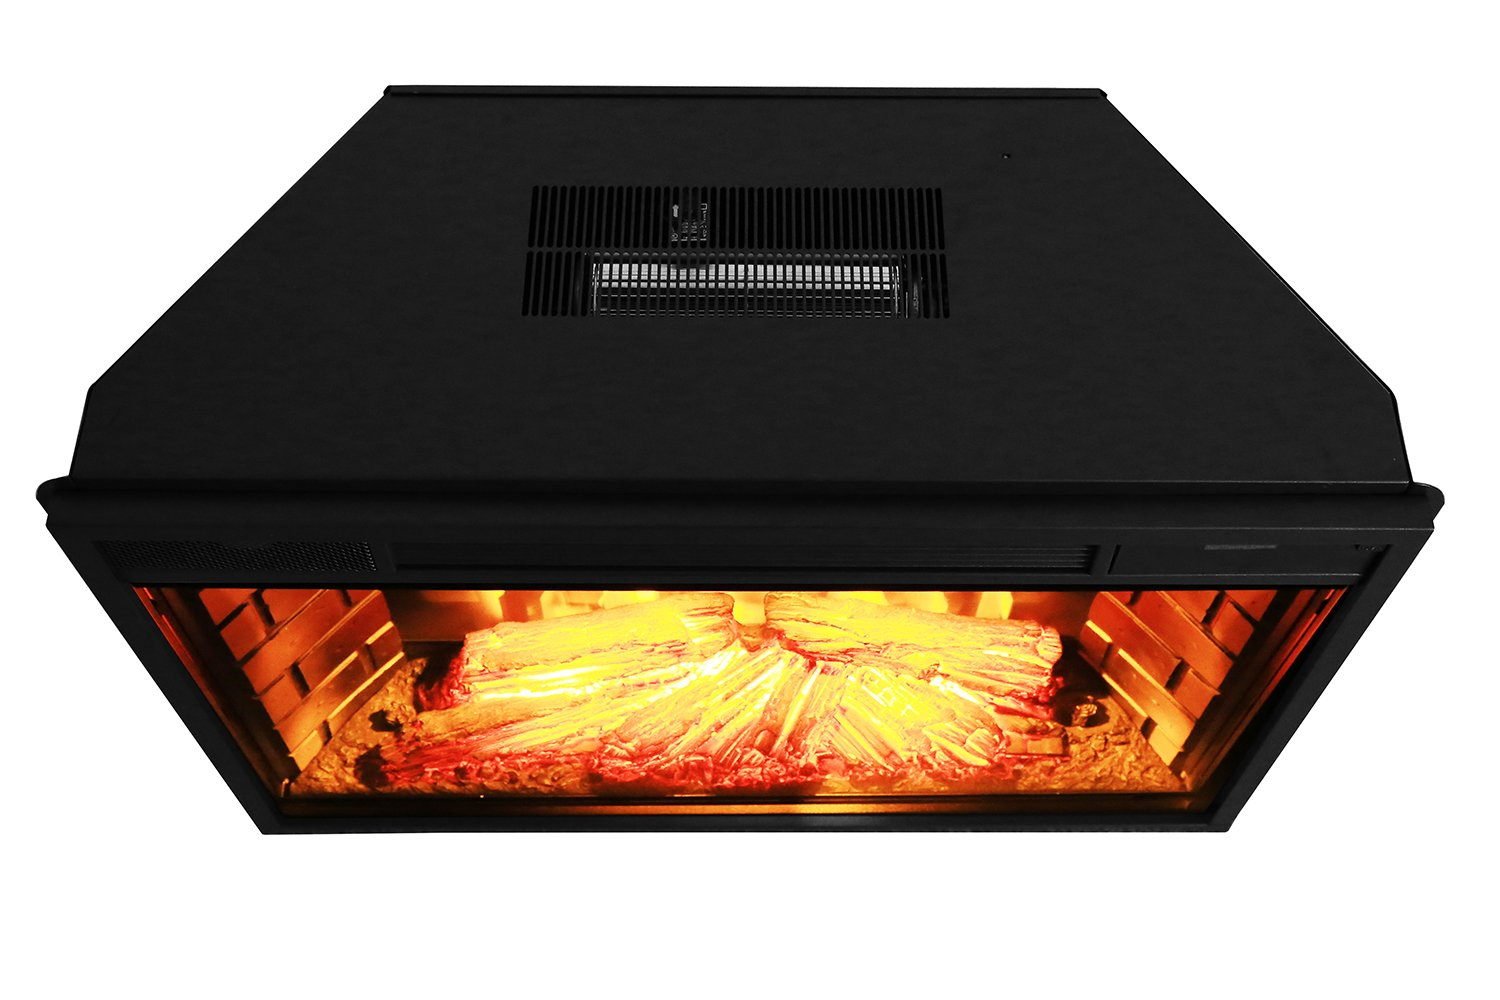 New classic flame electric fireplace inserts make an existing chimney - Amazon Com Akdy 28 Freestanding Electric Fireplace Insert Heater In Black With Tempered Glass And Remote Control Home Kitchen